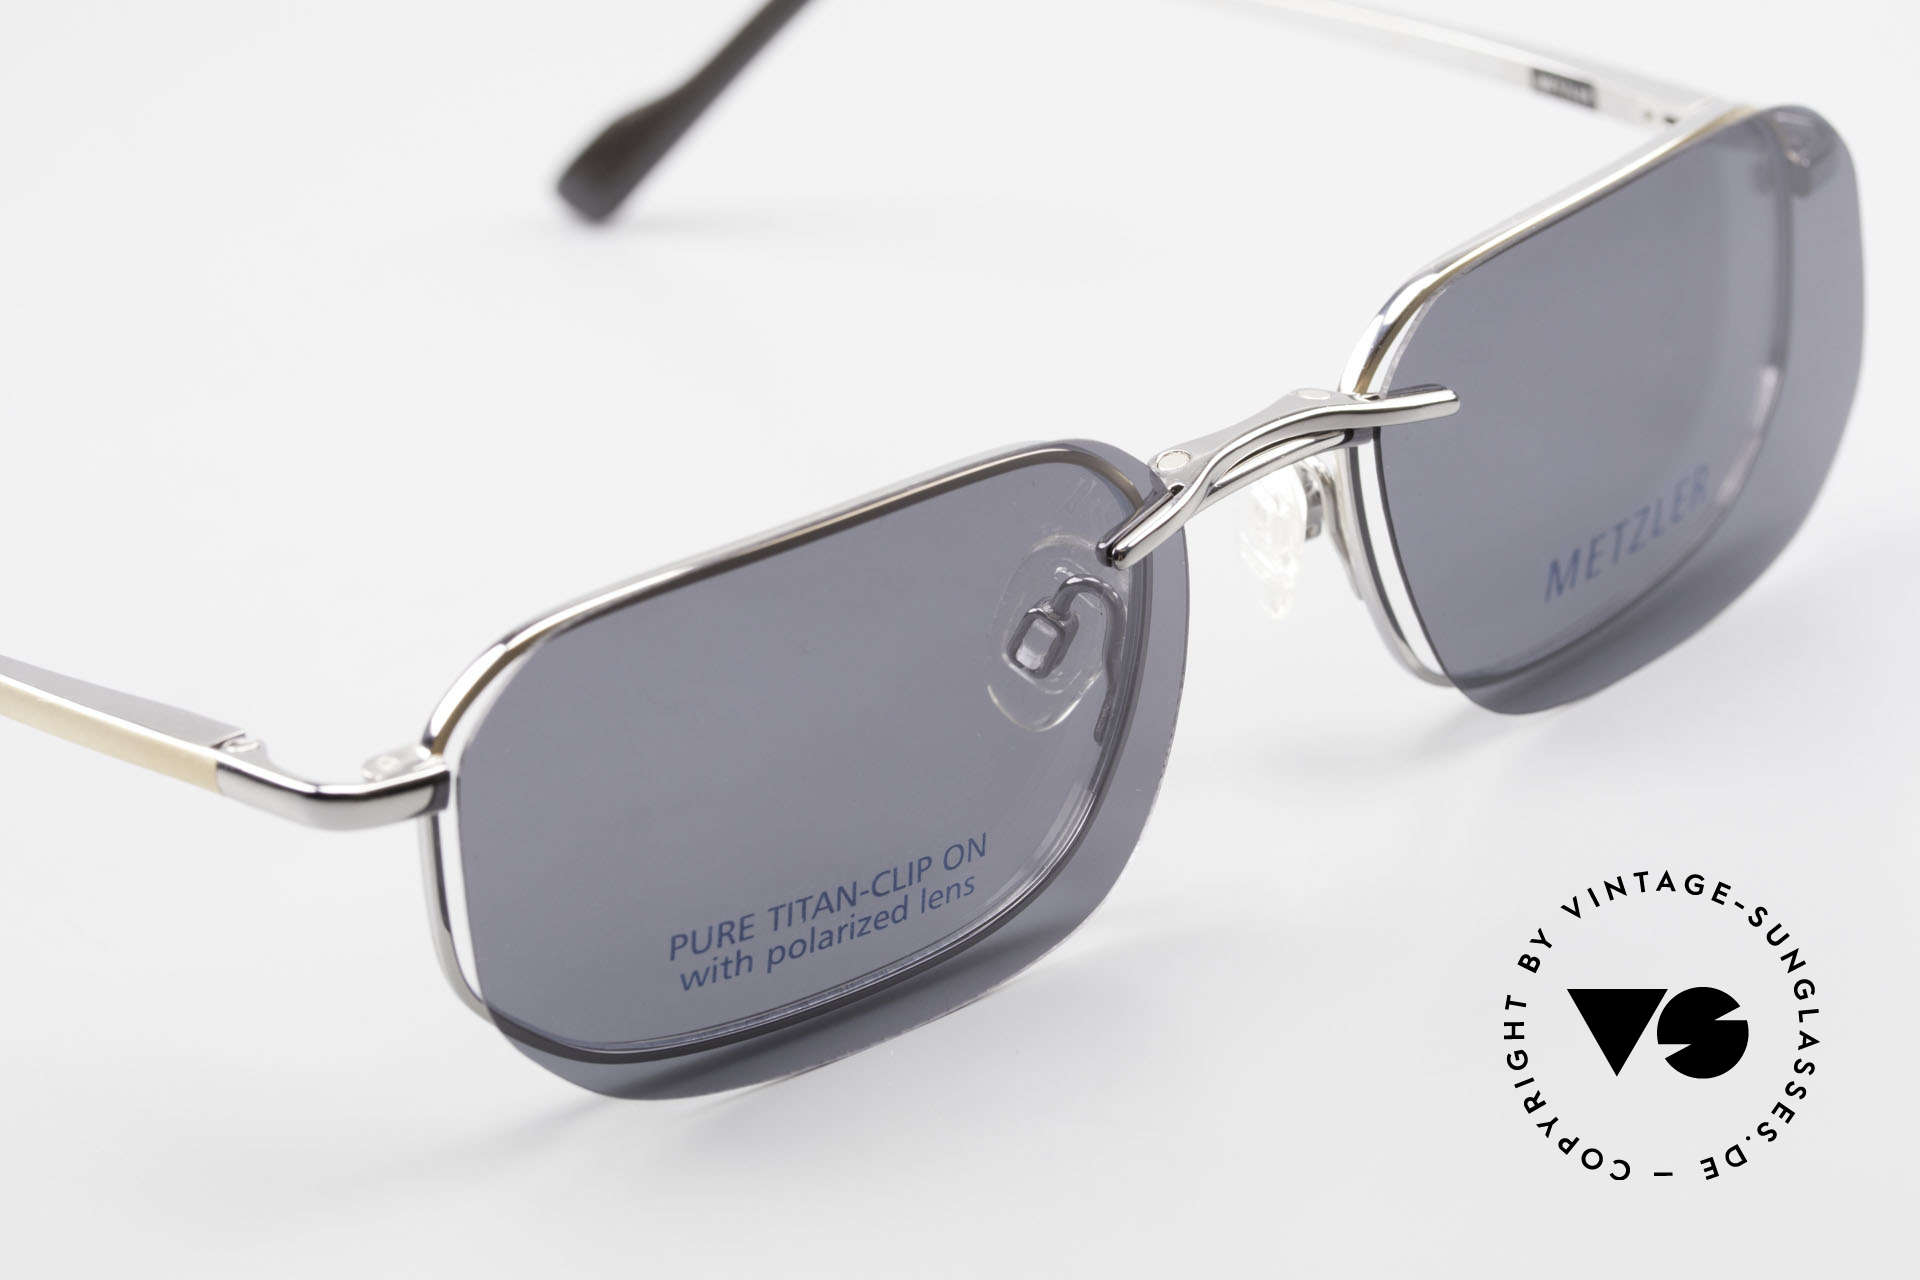 Metzler 1716 Titanium Frame Polarized Clip, never worn (like all our 90's men's Metzler sunglasses), Made for Men